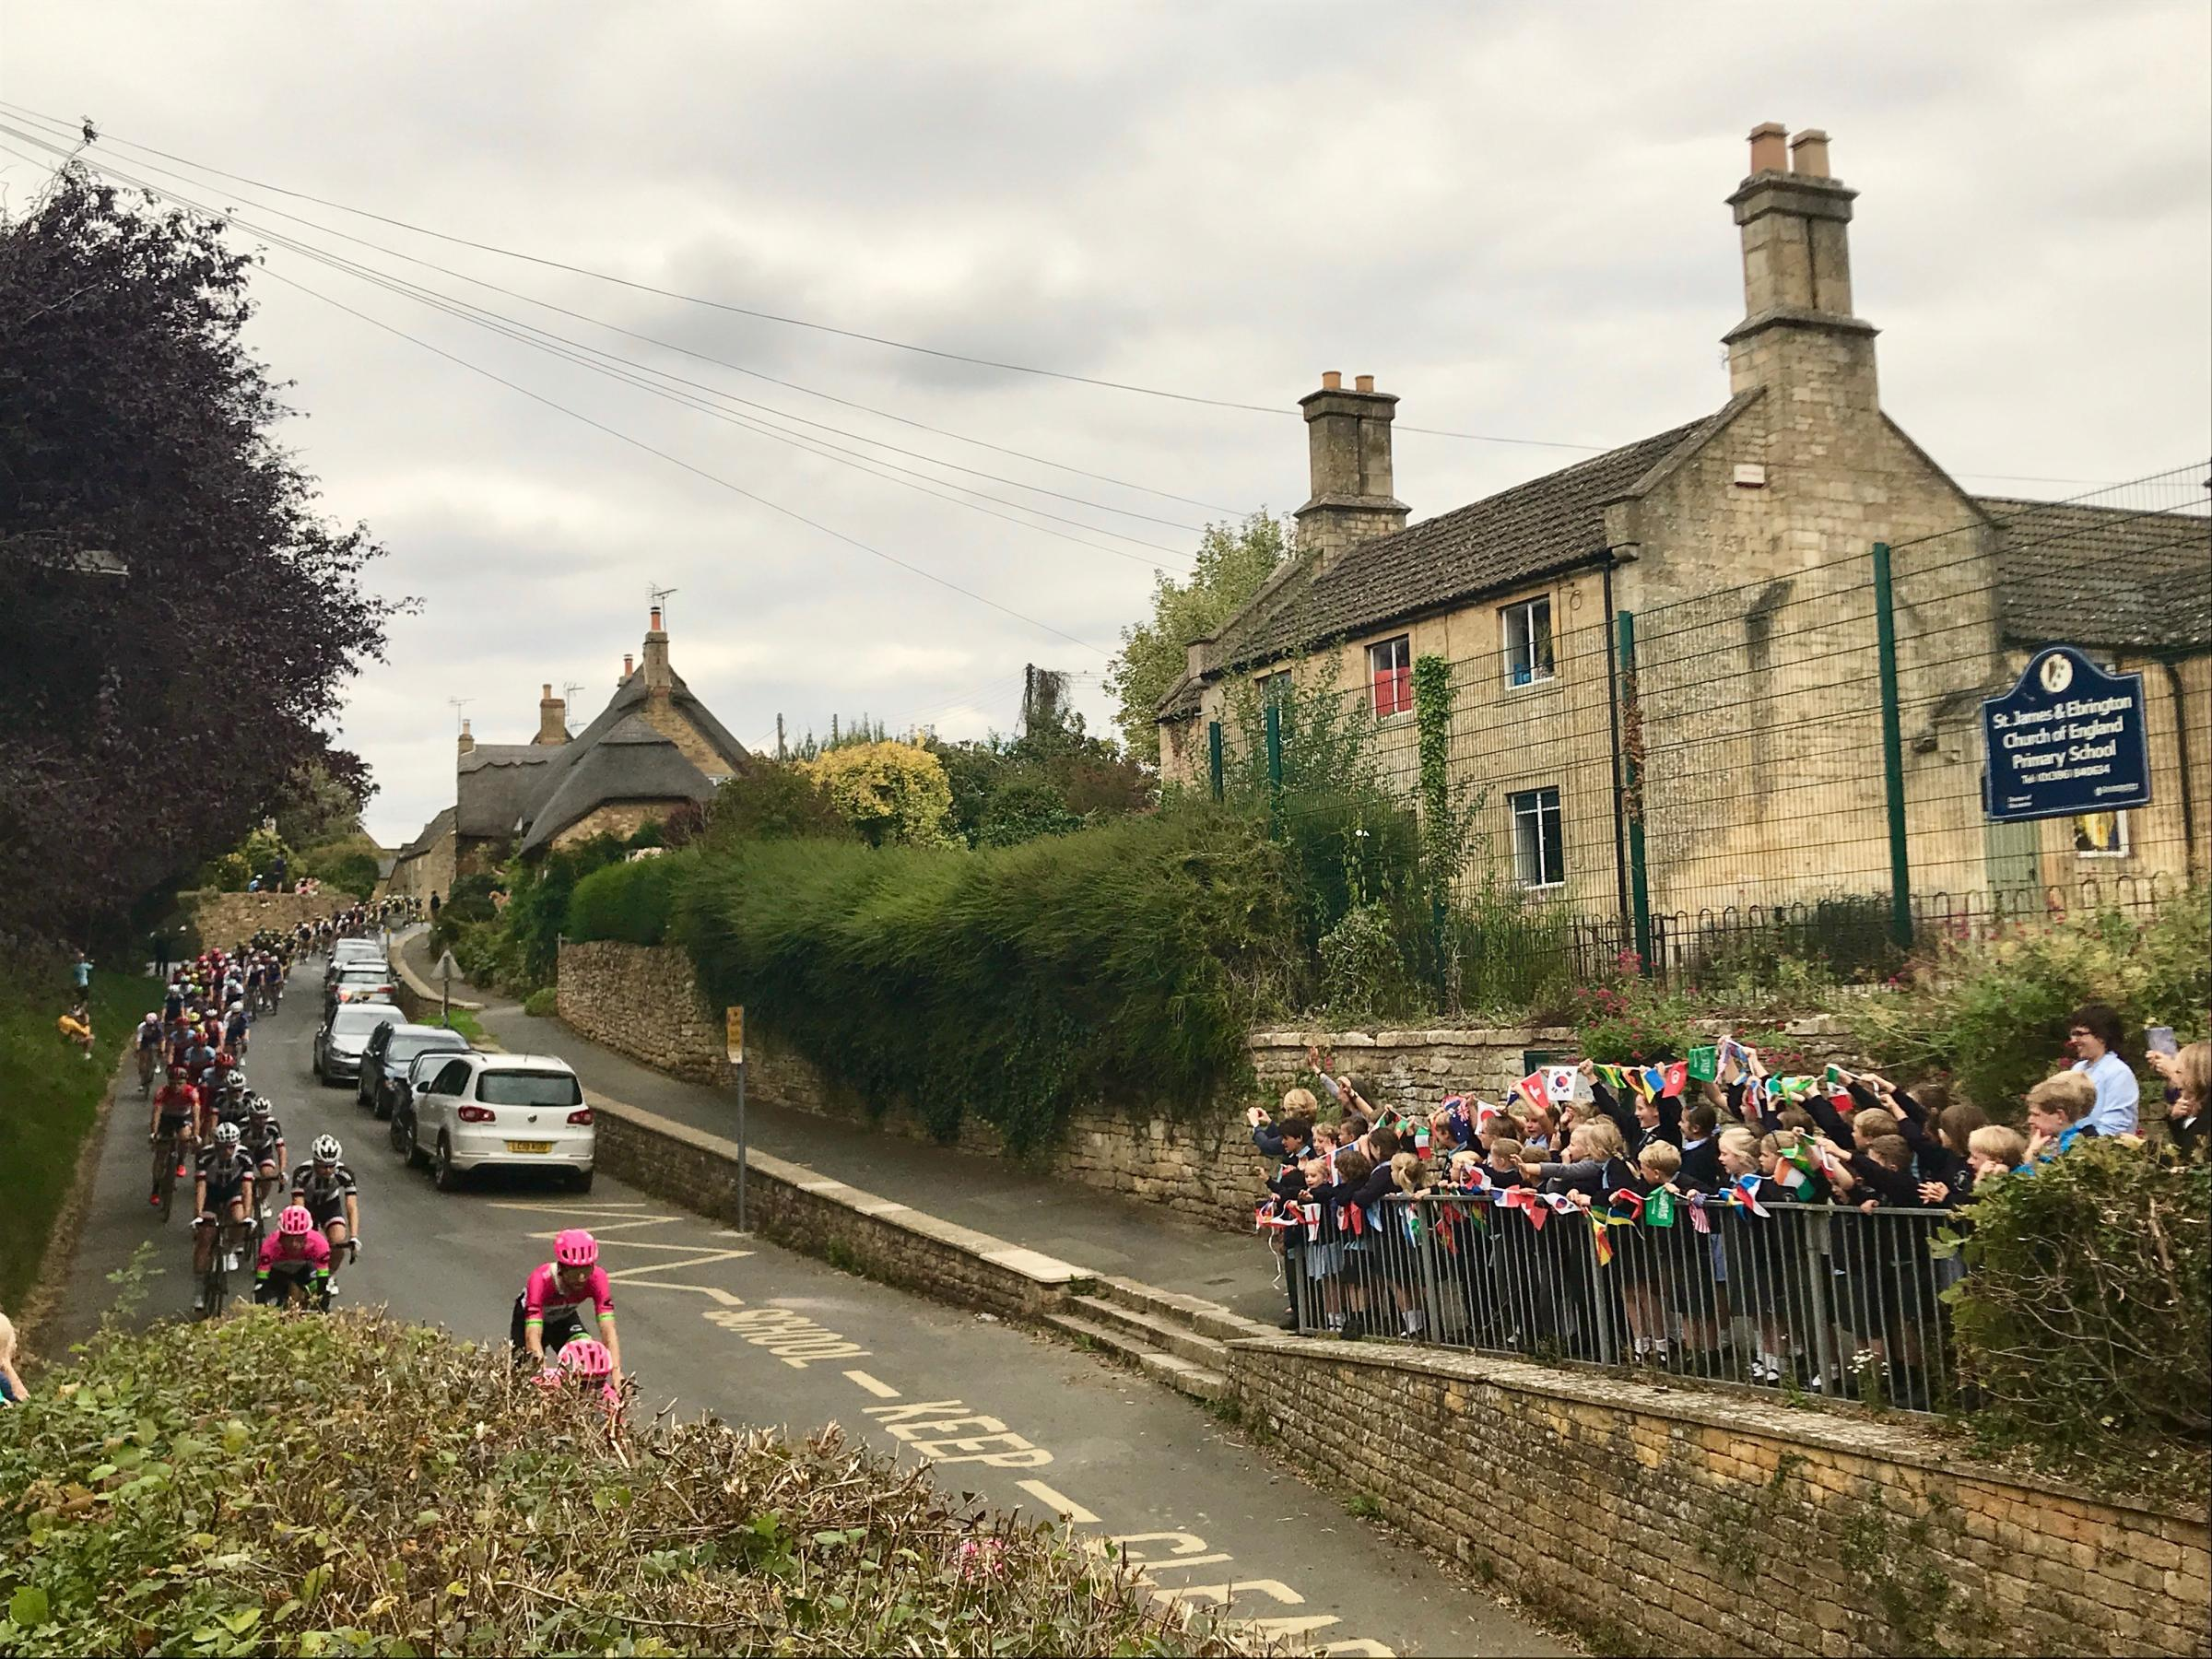 TOUR: The children loved seeing the Tour of Britain go through their village